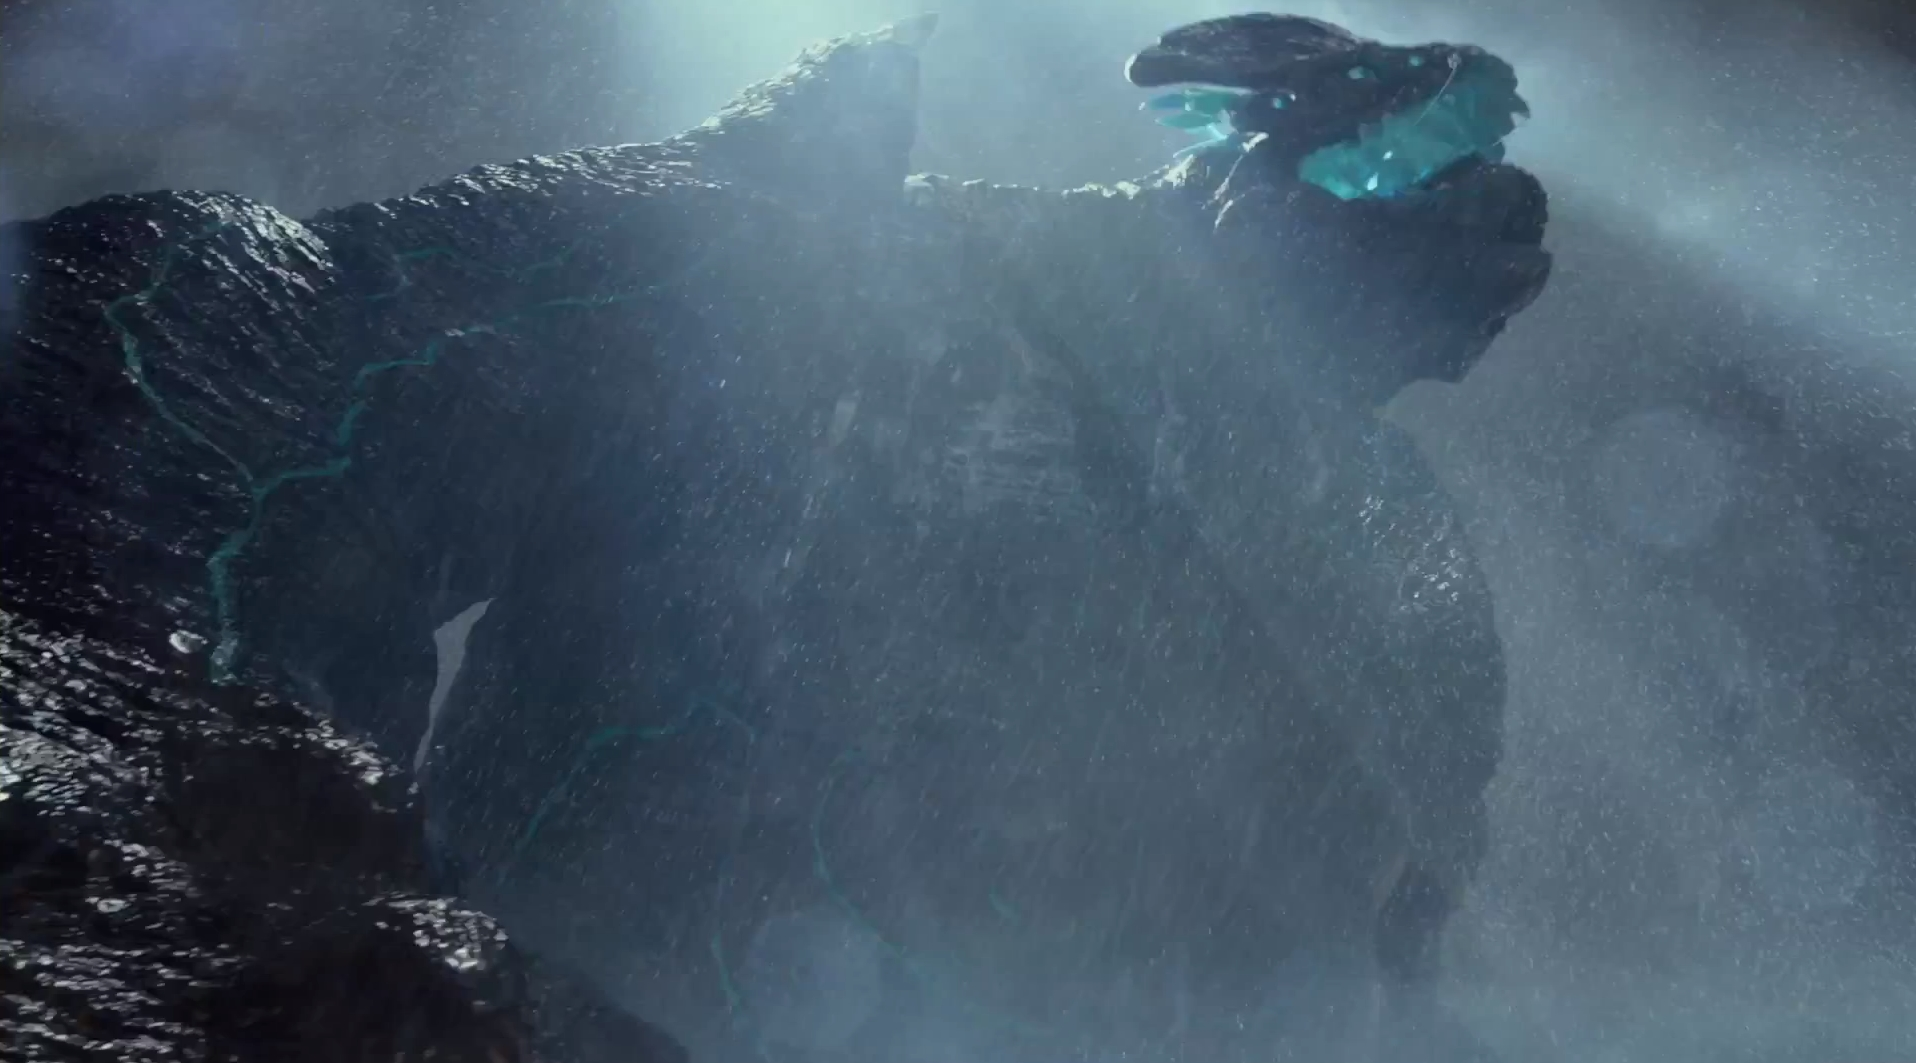 Motion design with c4d and after effects breakdown 3dart - Pacific Rim Digital Art 3d Artist